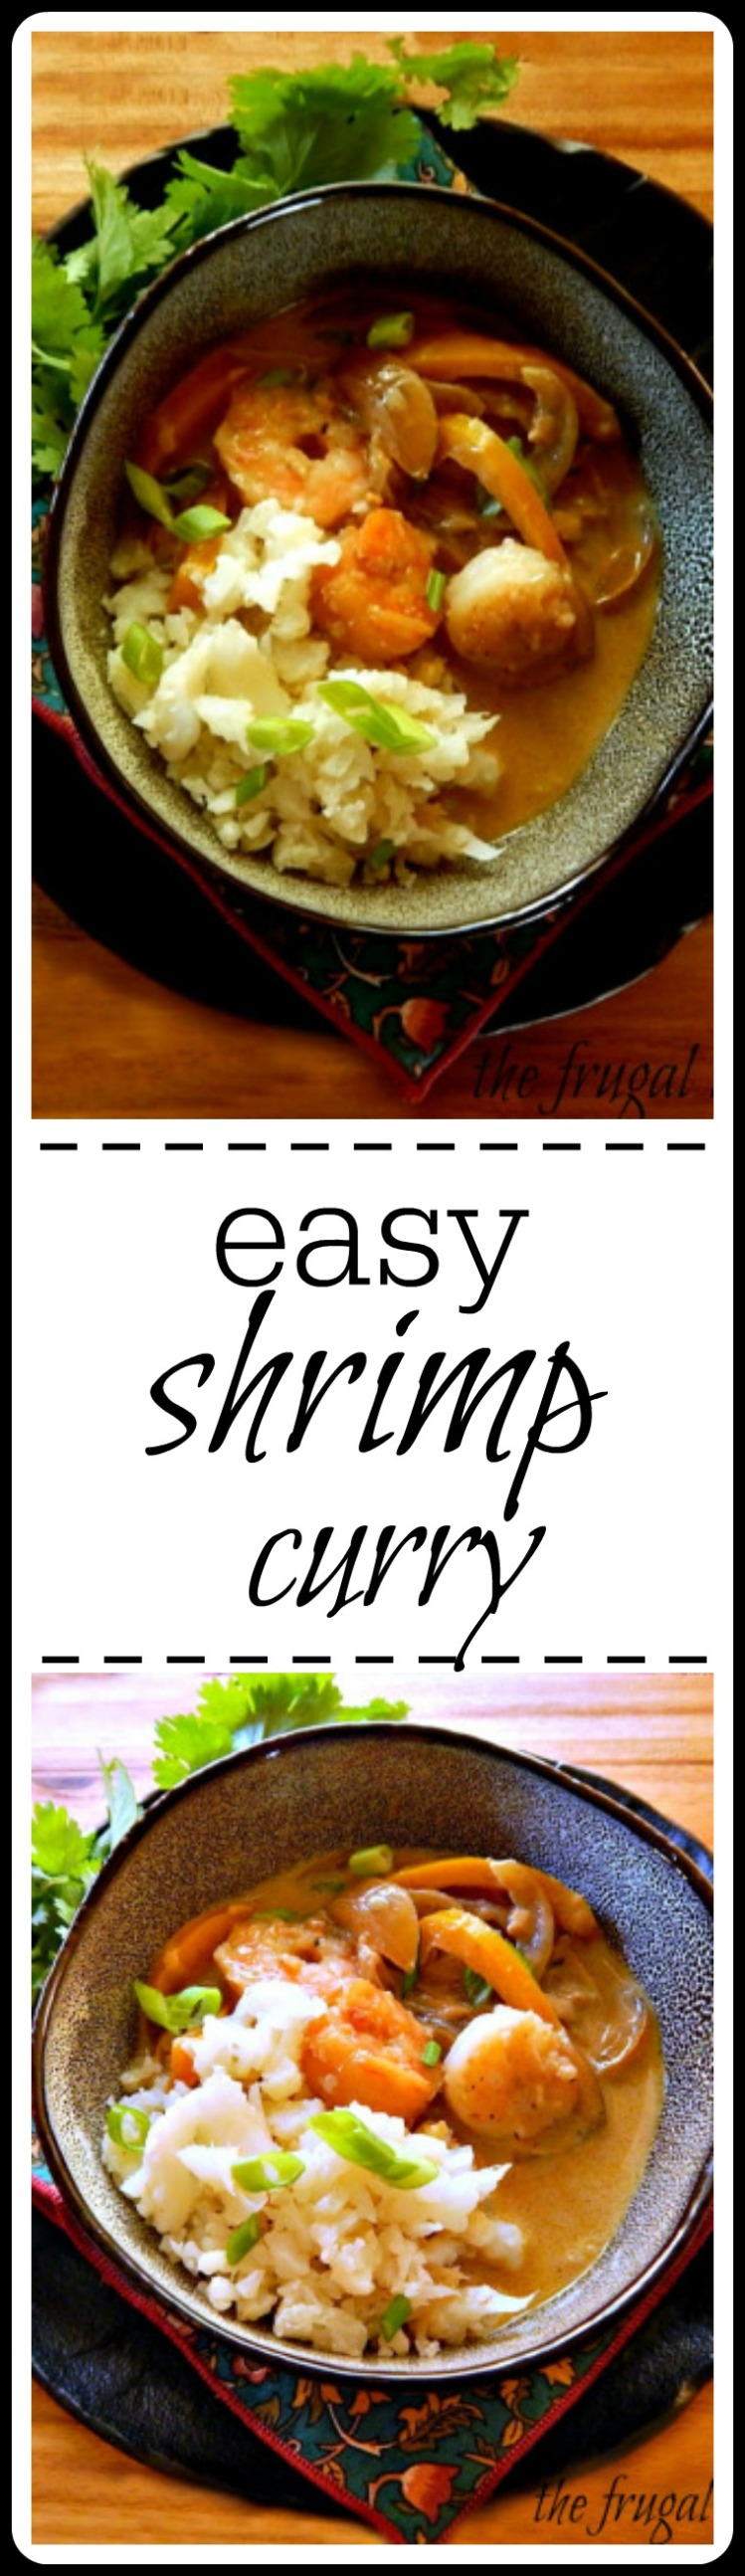 Very easy & very delish shrimp in curry sauce.